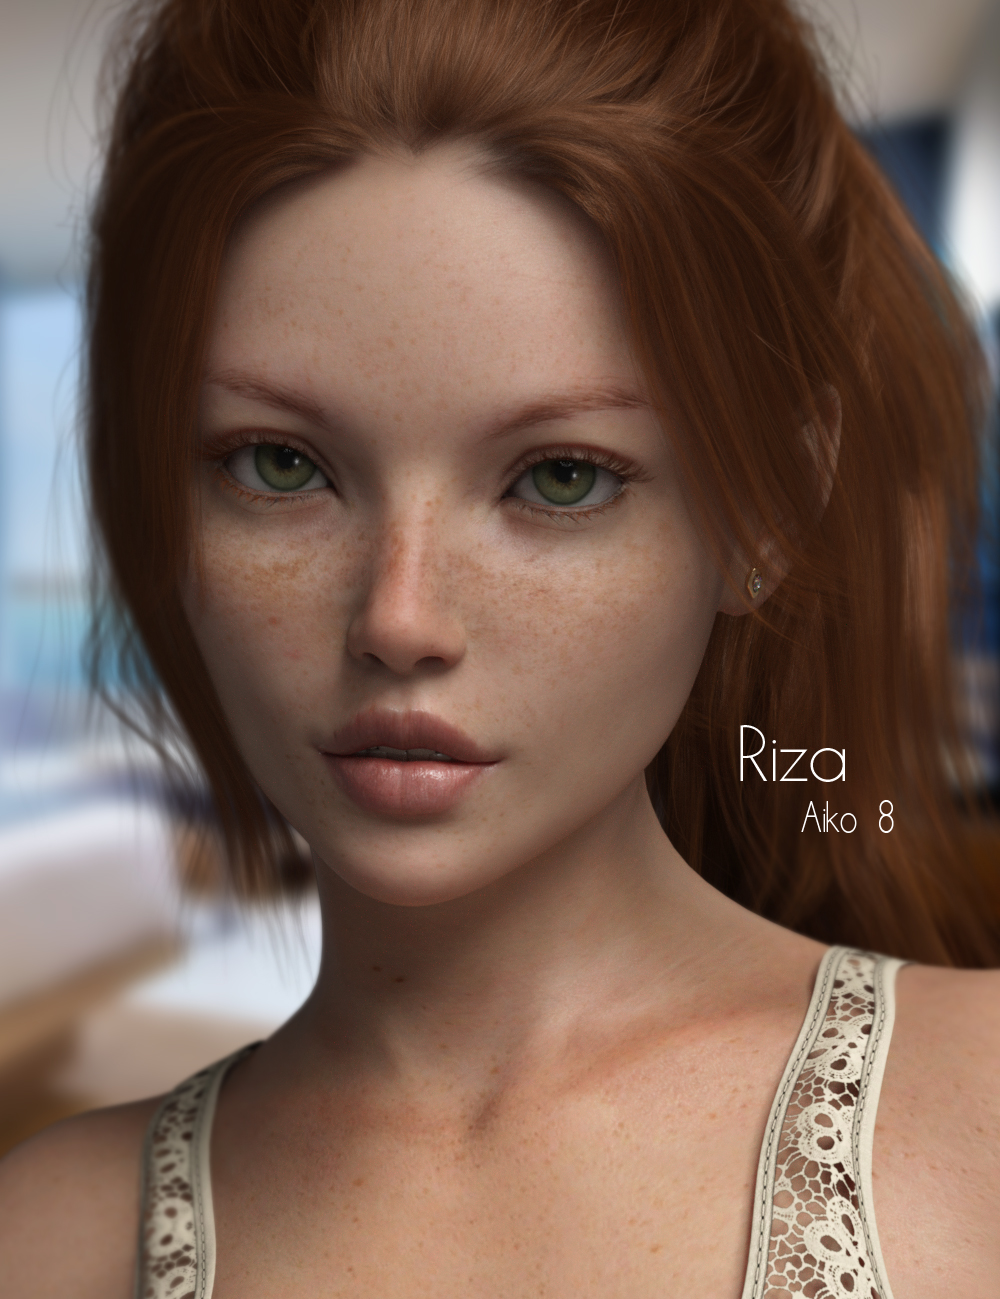 P3D Riza for Aiko 8 by: P3Design, 3D Models by Daz 3D